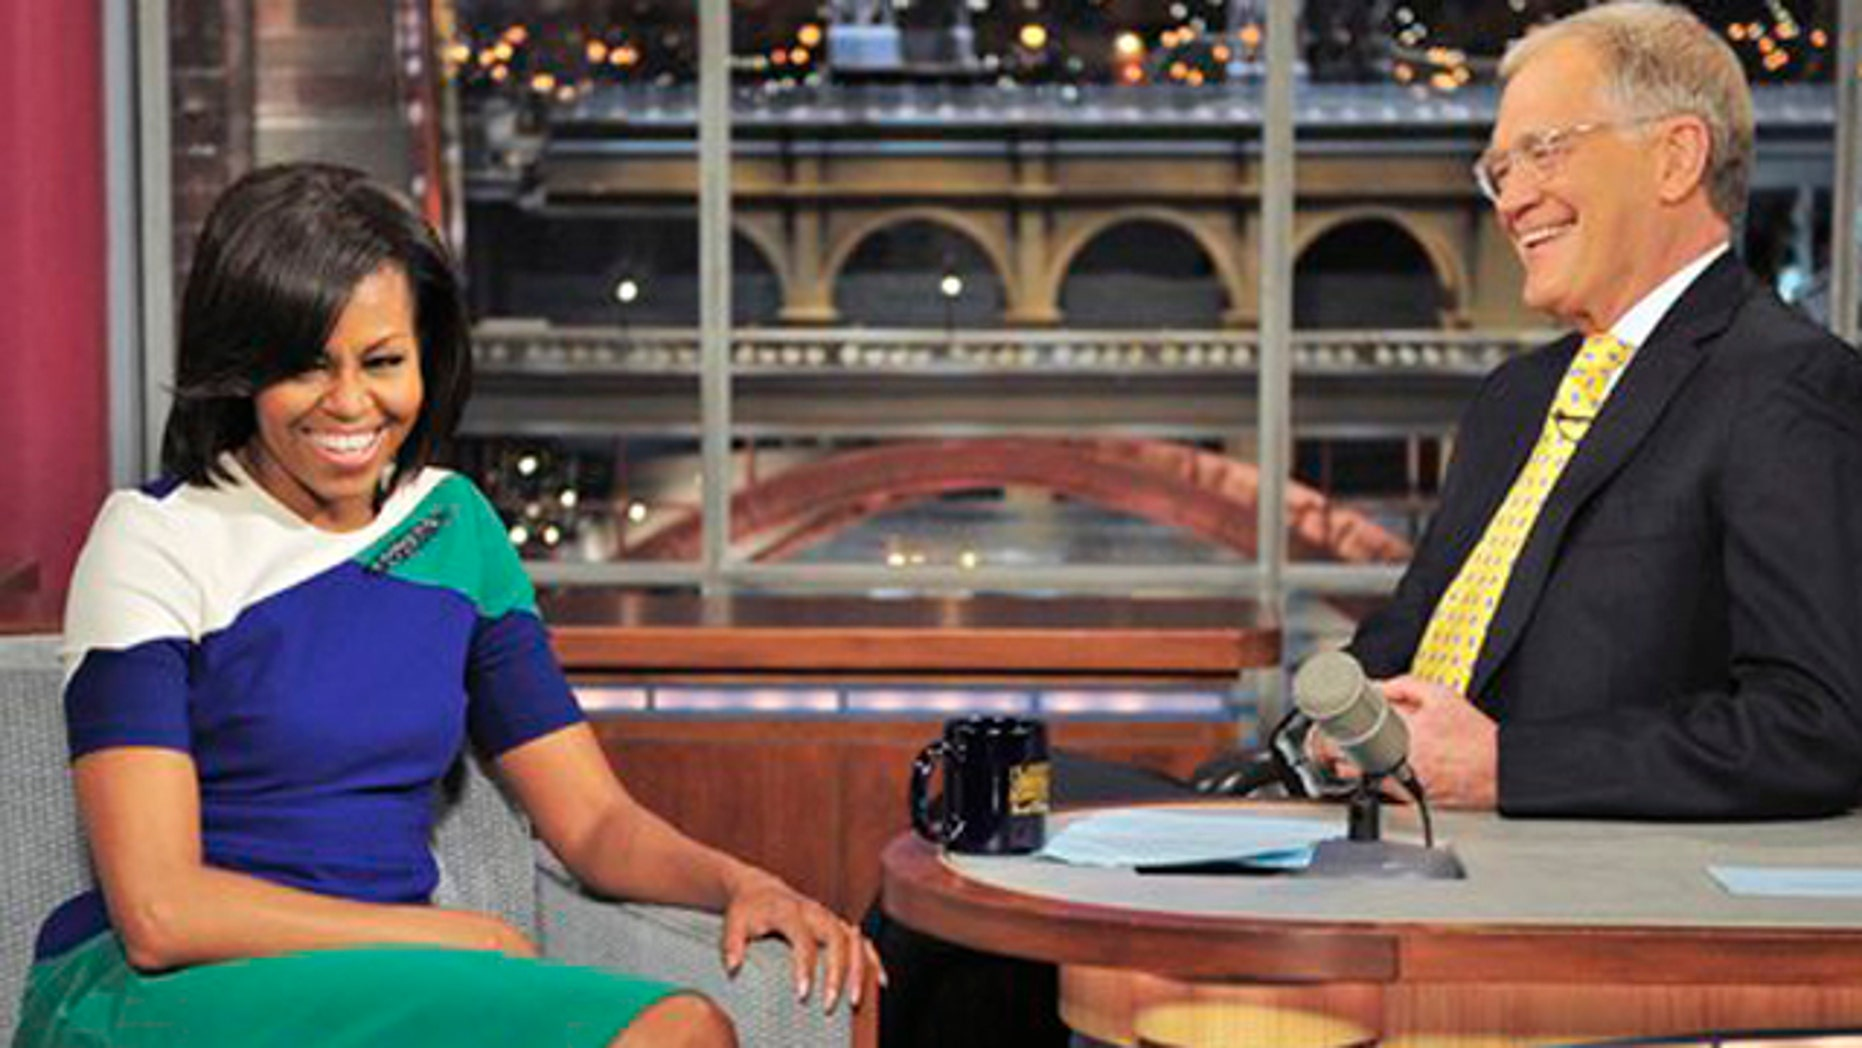 Mar. 19, 2012: In this photo provided by CBS, first lady Michelle Obama joins host David Letterman on the set of the Late Show with David Letterman.